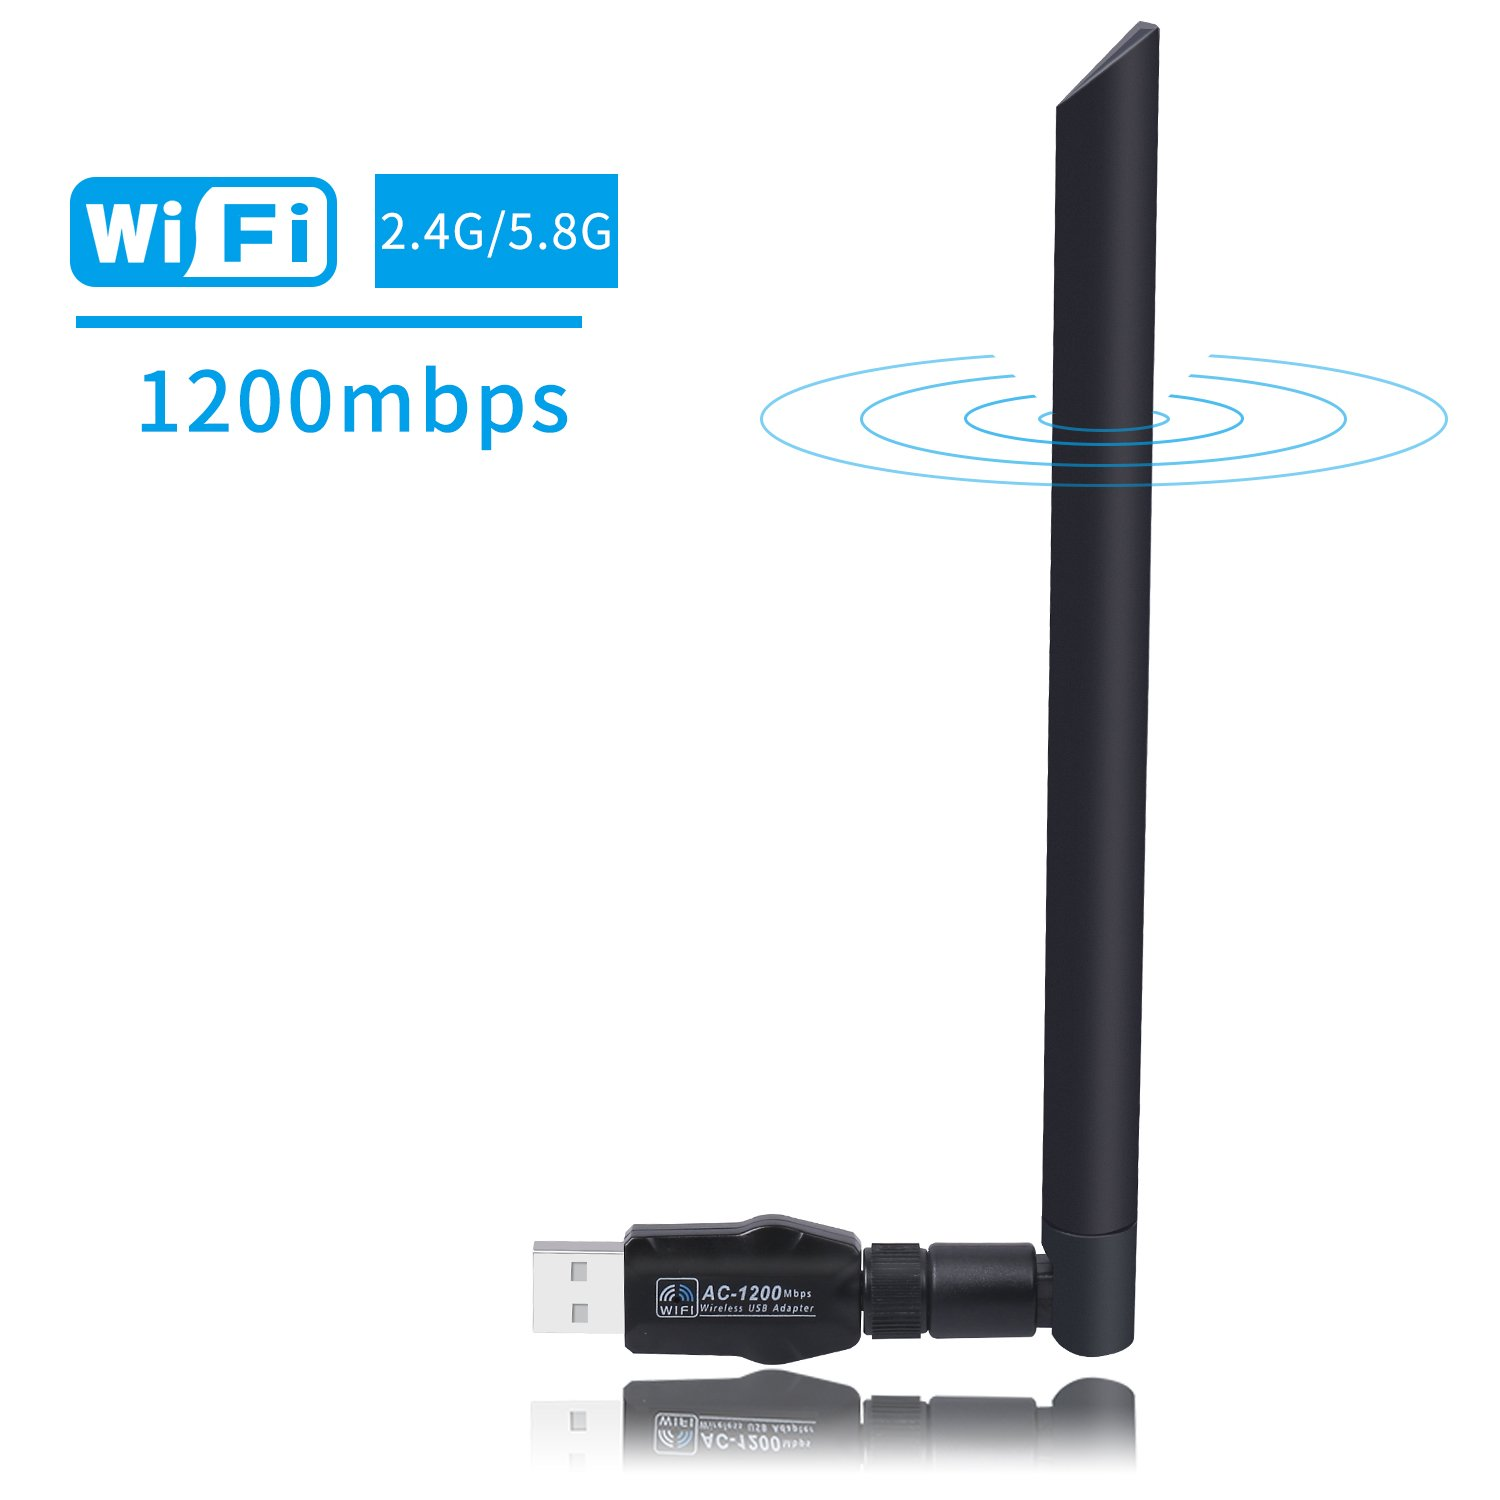 WiFi Adapter Wlan Stick USB 3.0 1200 Mbit/s 5dBi Wireless DualBand (5.8G/867Mbps+2.4G/300Mbps) Antenna WiFi Adapter für Windows XP/7/8/10/Vista/Server, MAC OS  1Dealer LTD